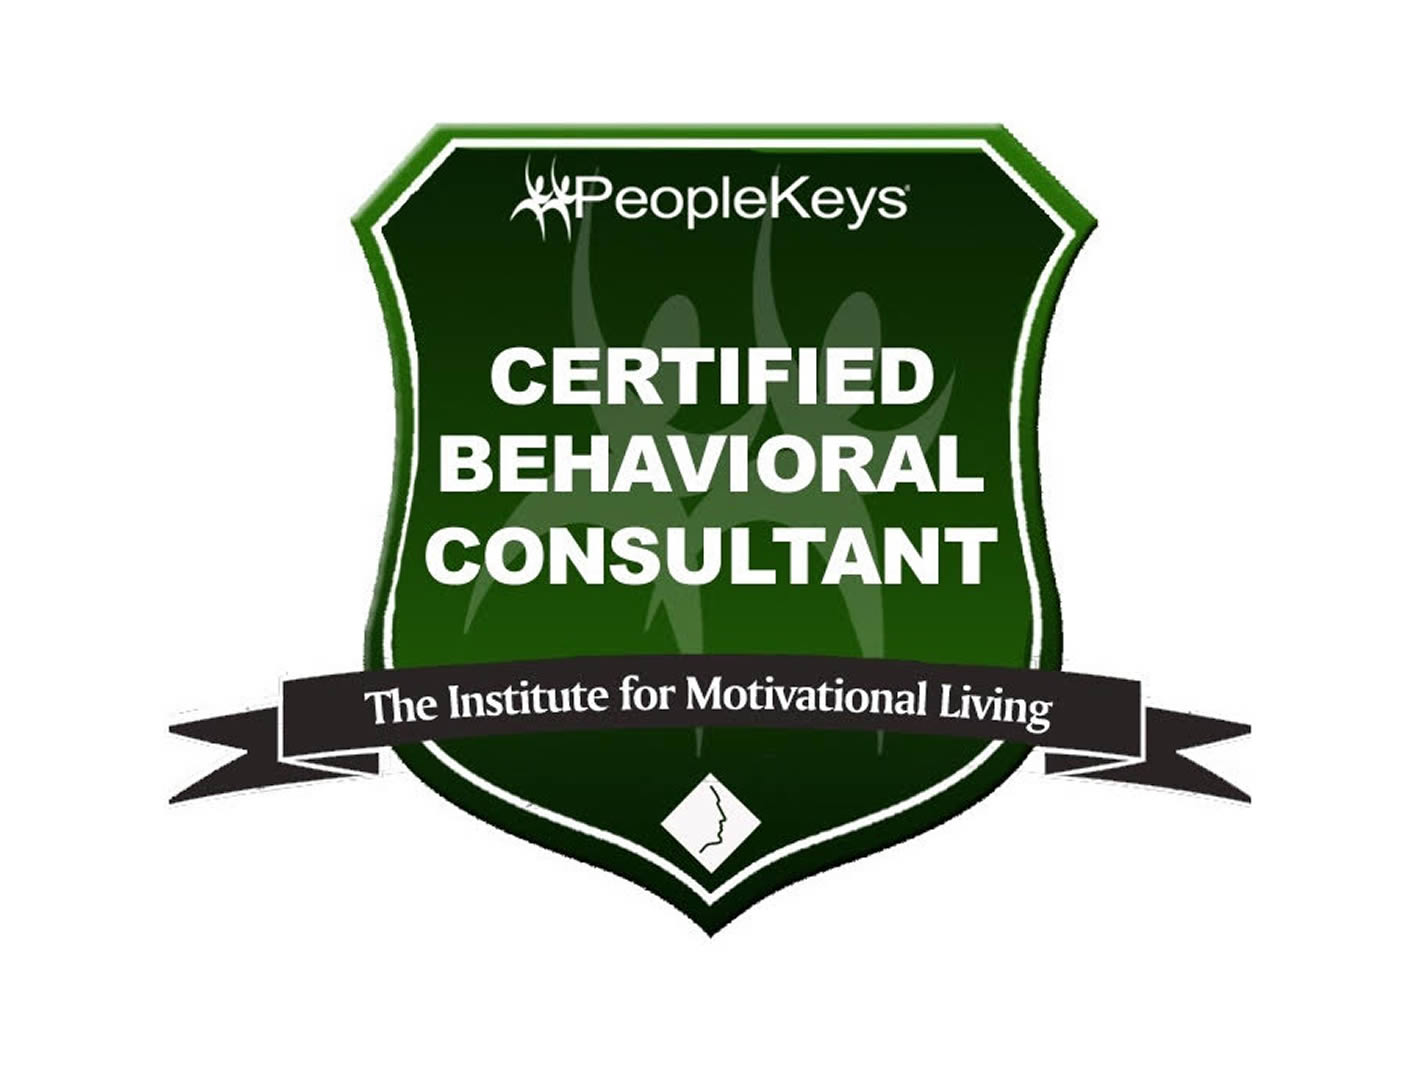 Certified Behavioral Consultant